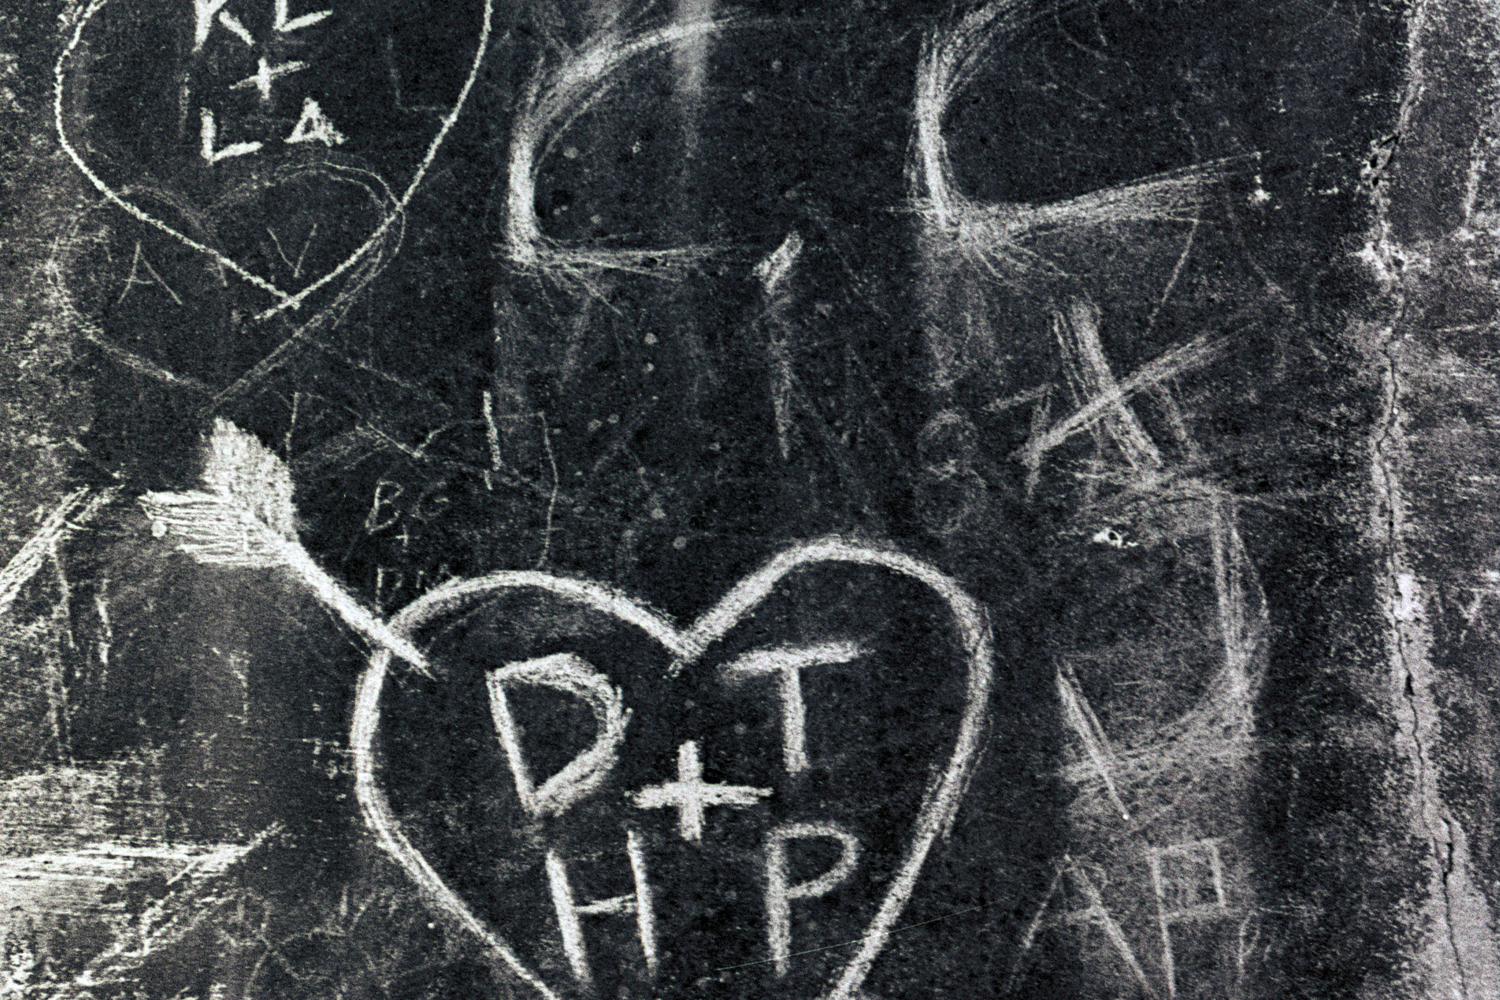 heartbreak-hotel-seawall-grafitti-2.jpg